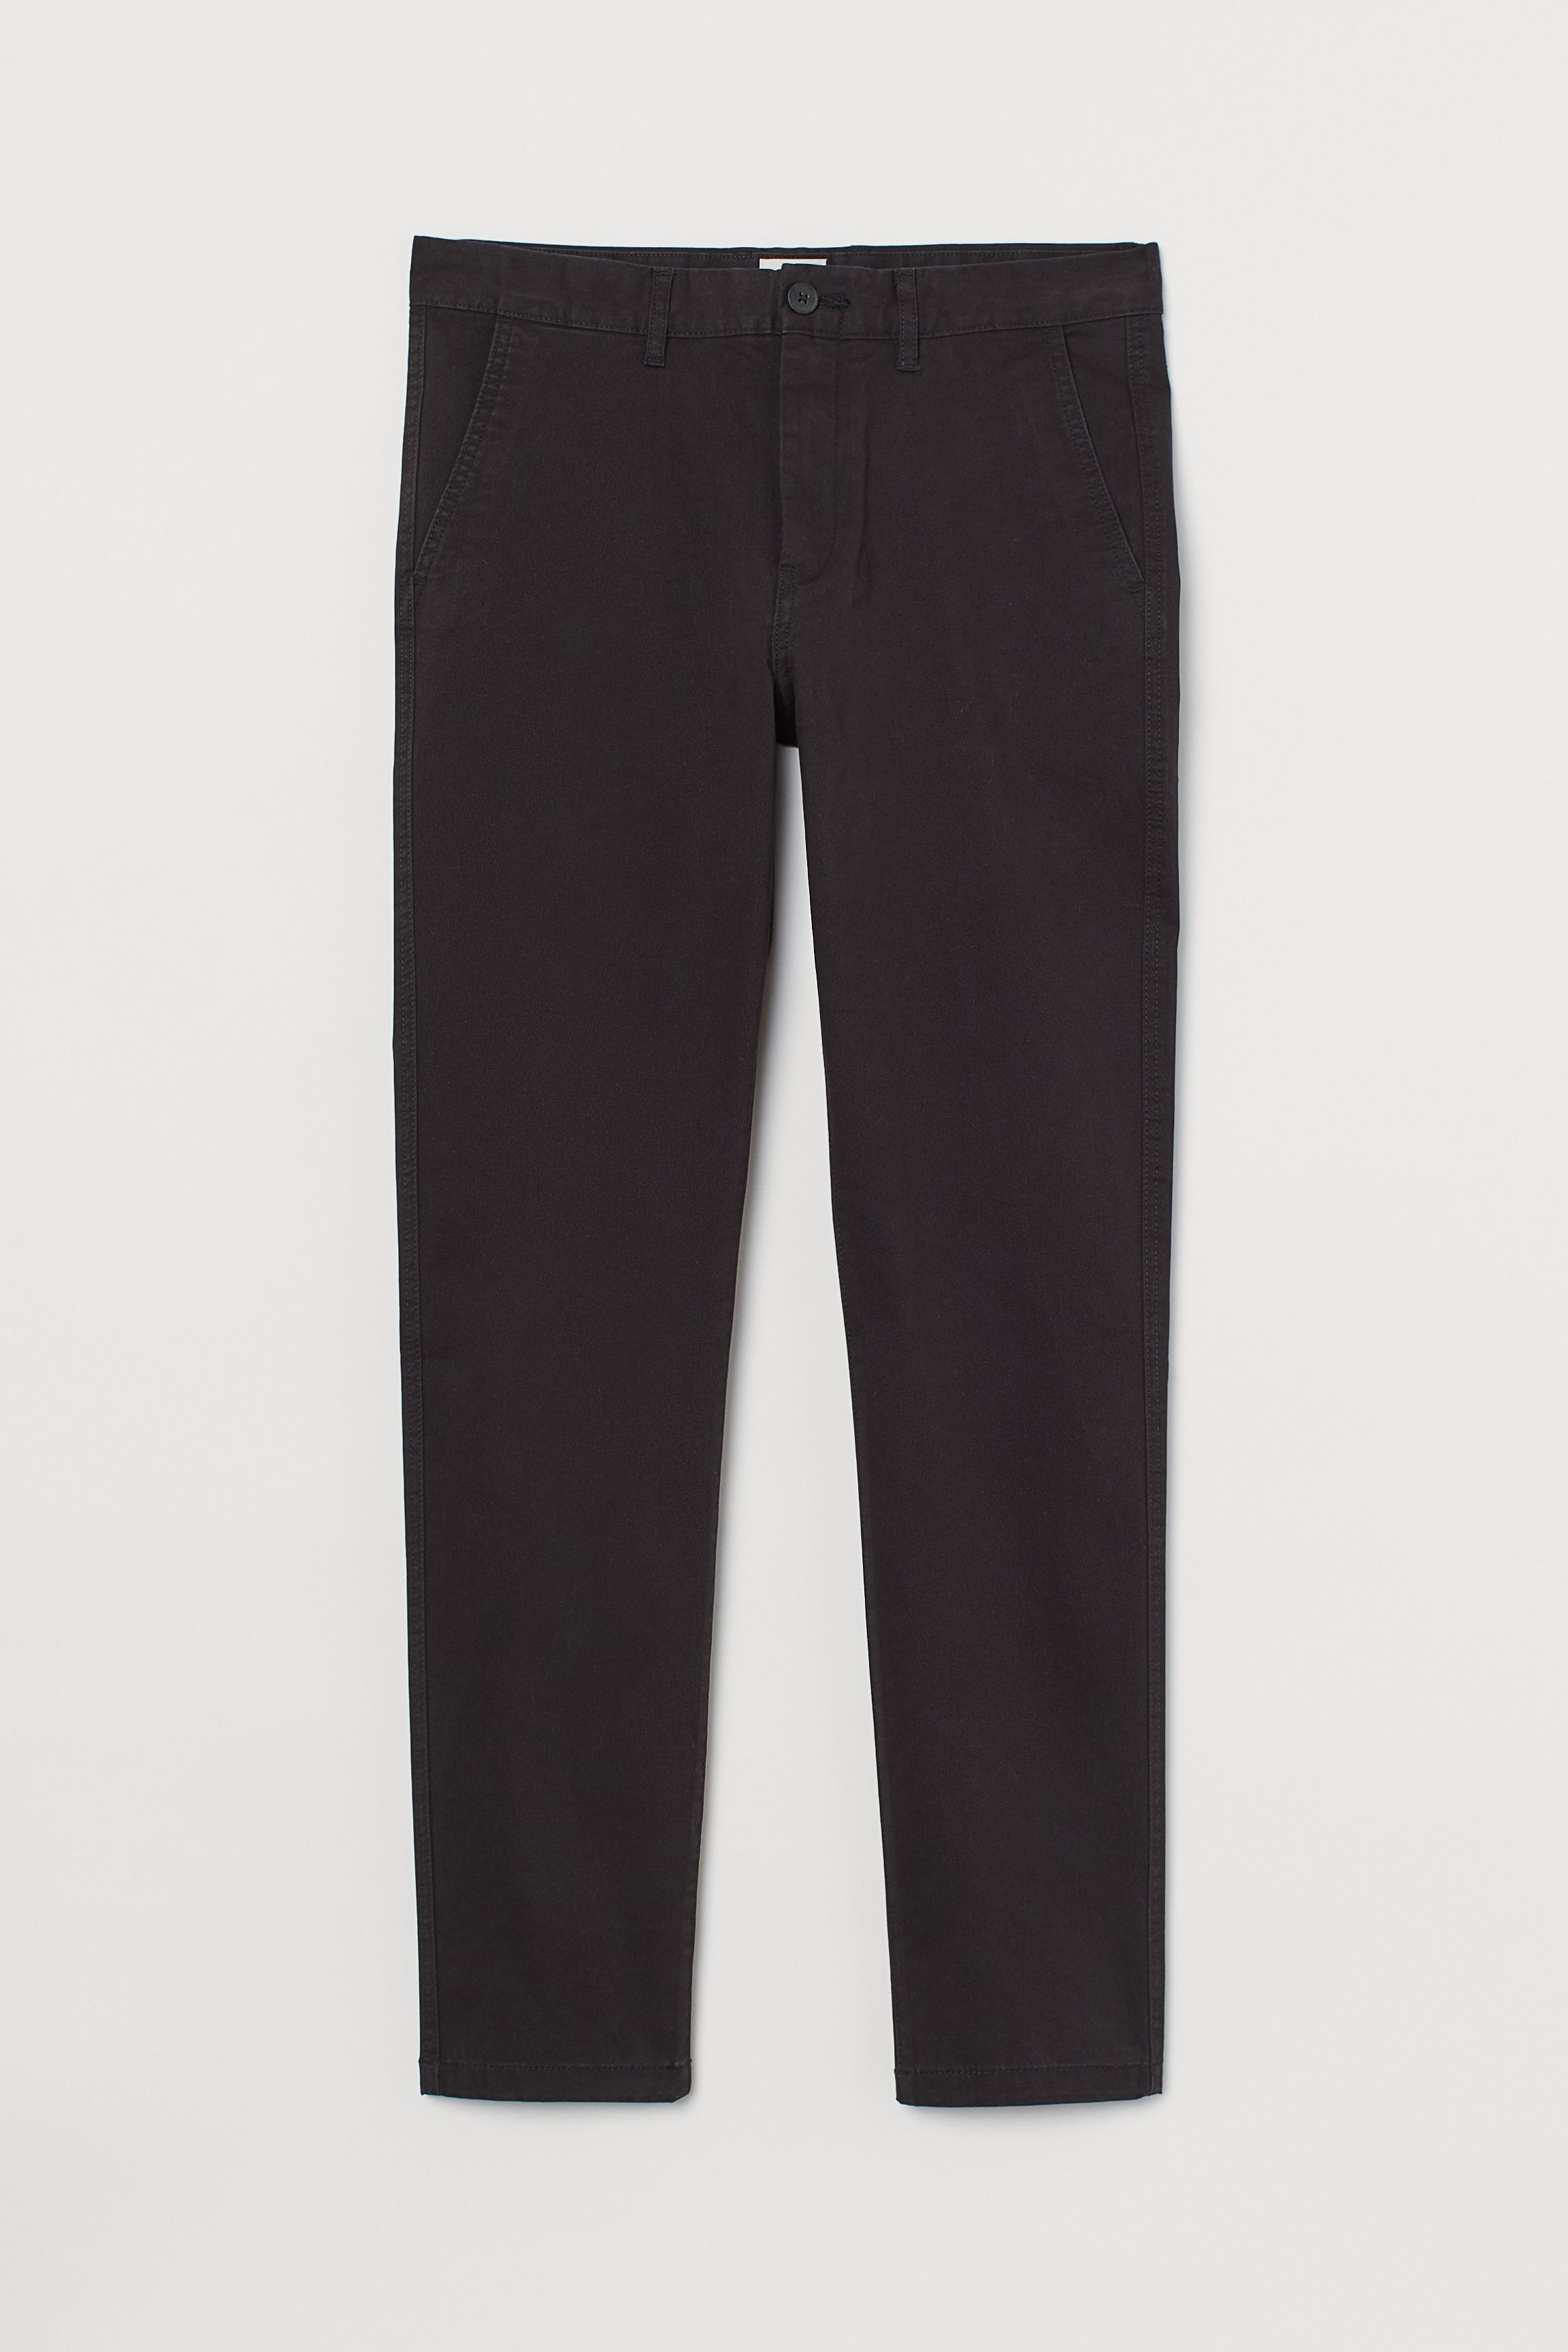 Skinny Fit Cotton Chinos